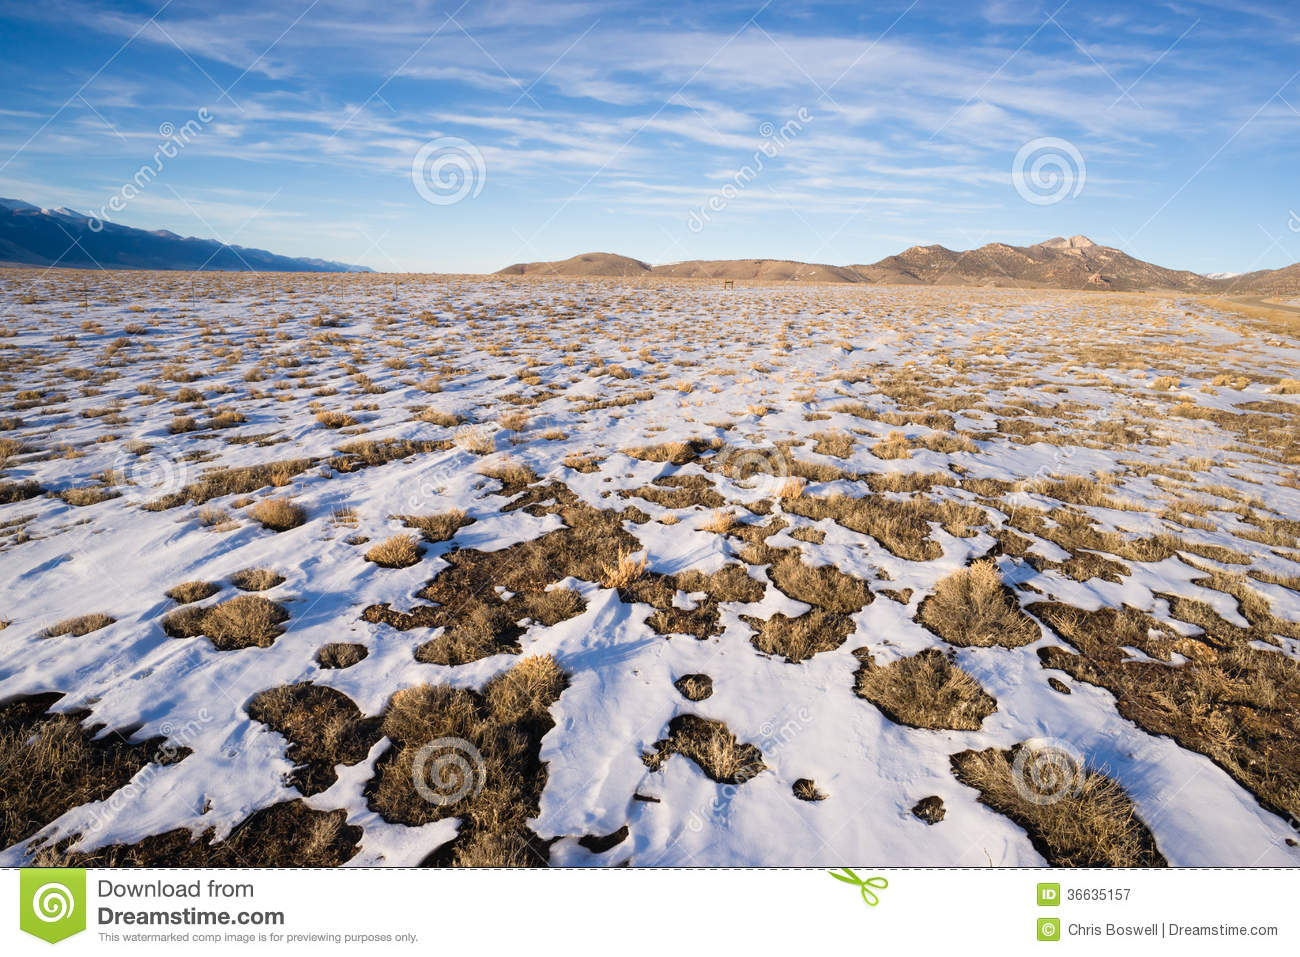 Royalty Free Stock Photos Entry Inter  Buttons To Flats Push Numbered Door Bell Image34450278 additionally Royalty Free Stock Images Thai Dragon King Naga Statue Image25924279 furthermore Royalty Free Stock Photography Winter Tundra Desert Landscape Great Basin Area Western Usa Blue Skies Prevail Day Southwestern Image36635157 likewise Indoorsignage further Facade Mechanics Information. on outdoor information boards